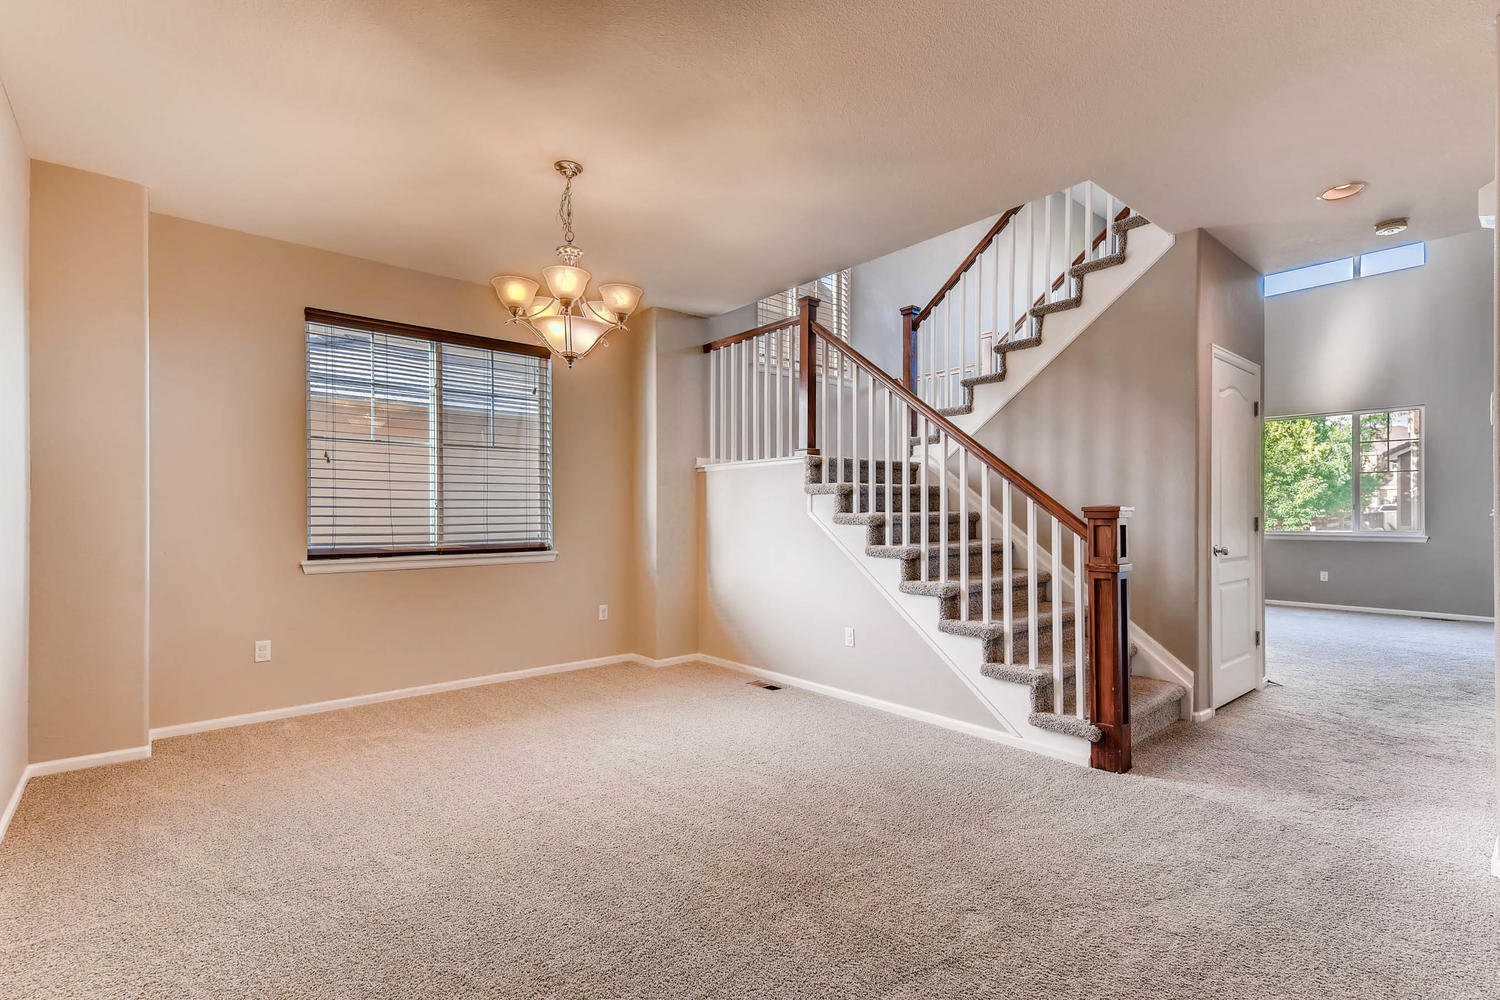 10186 Pitkin Way Commerce City-large-007-12-Dining Room-1500x1000-72dpi.jpg